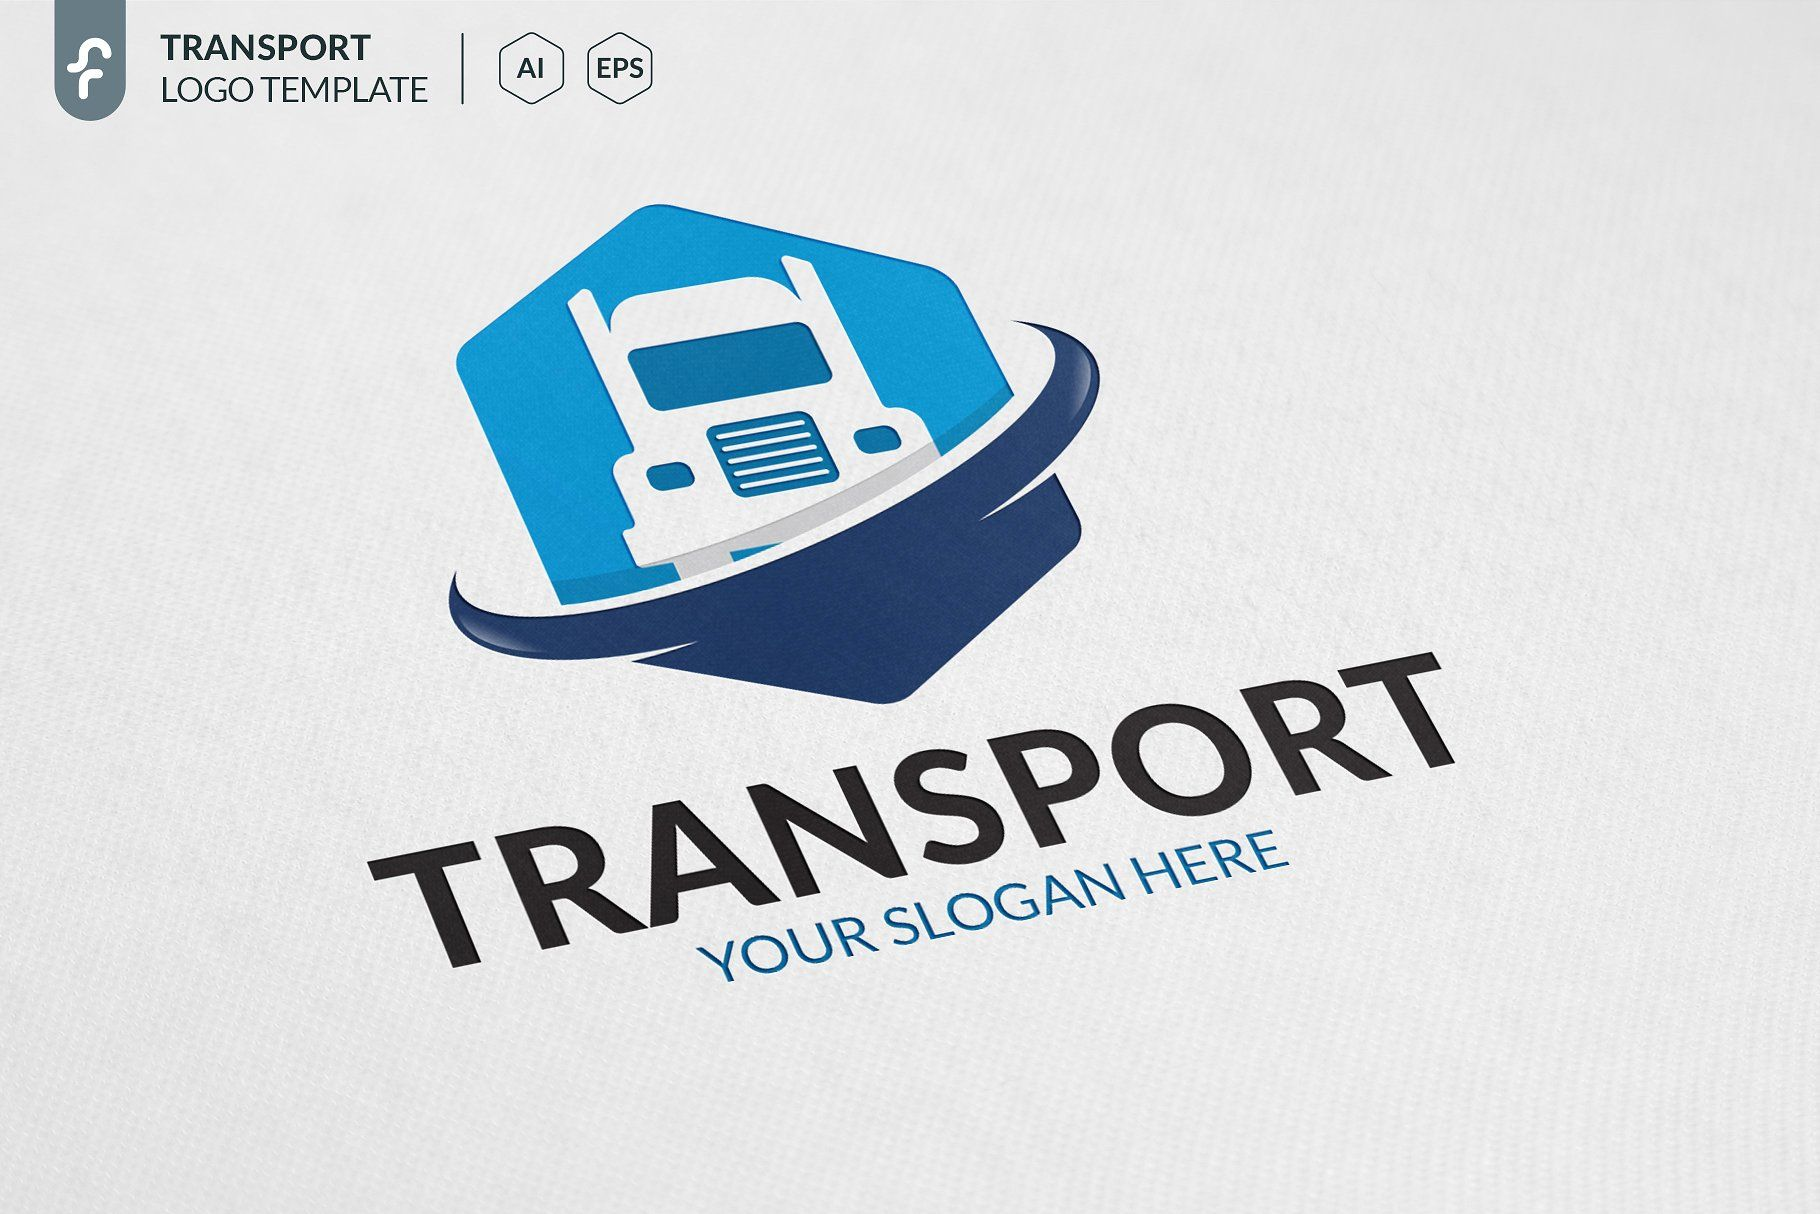 Transport Truck Logo TruckTransportTemplatesLogo